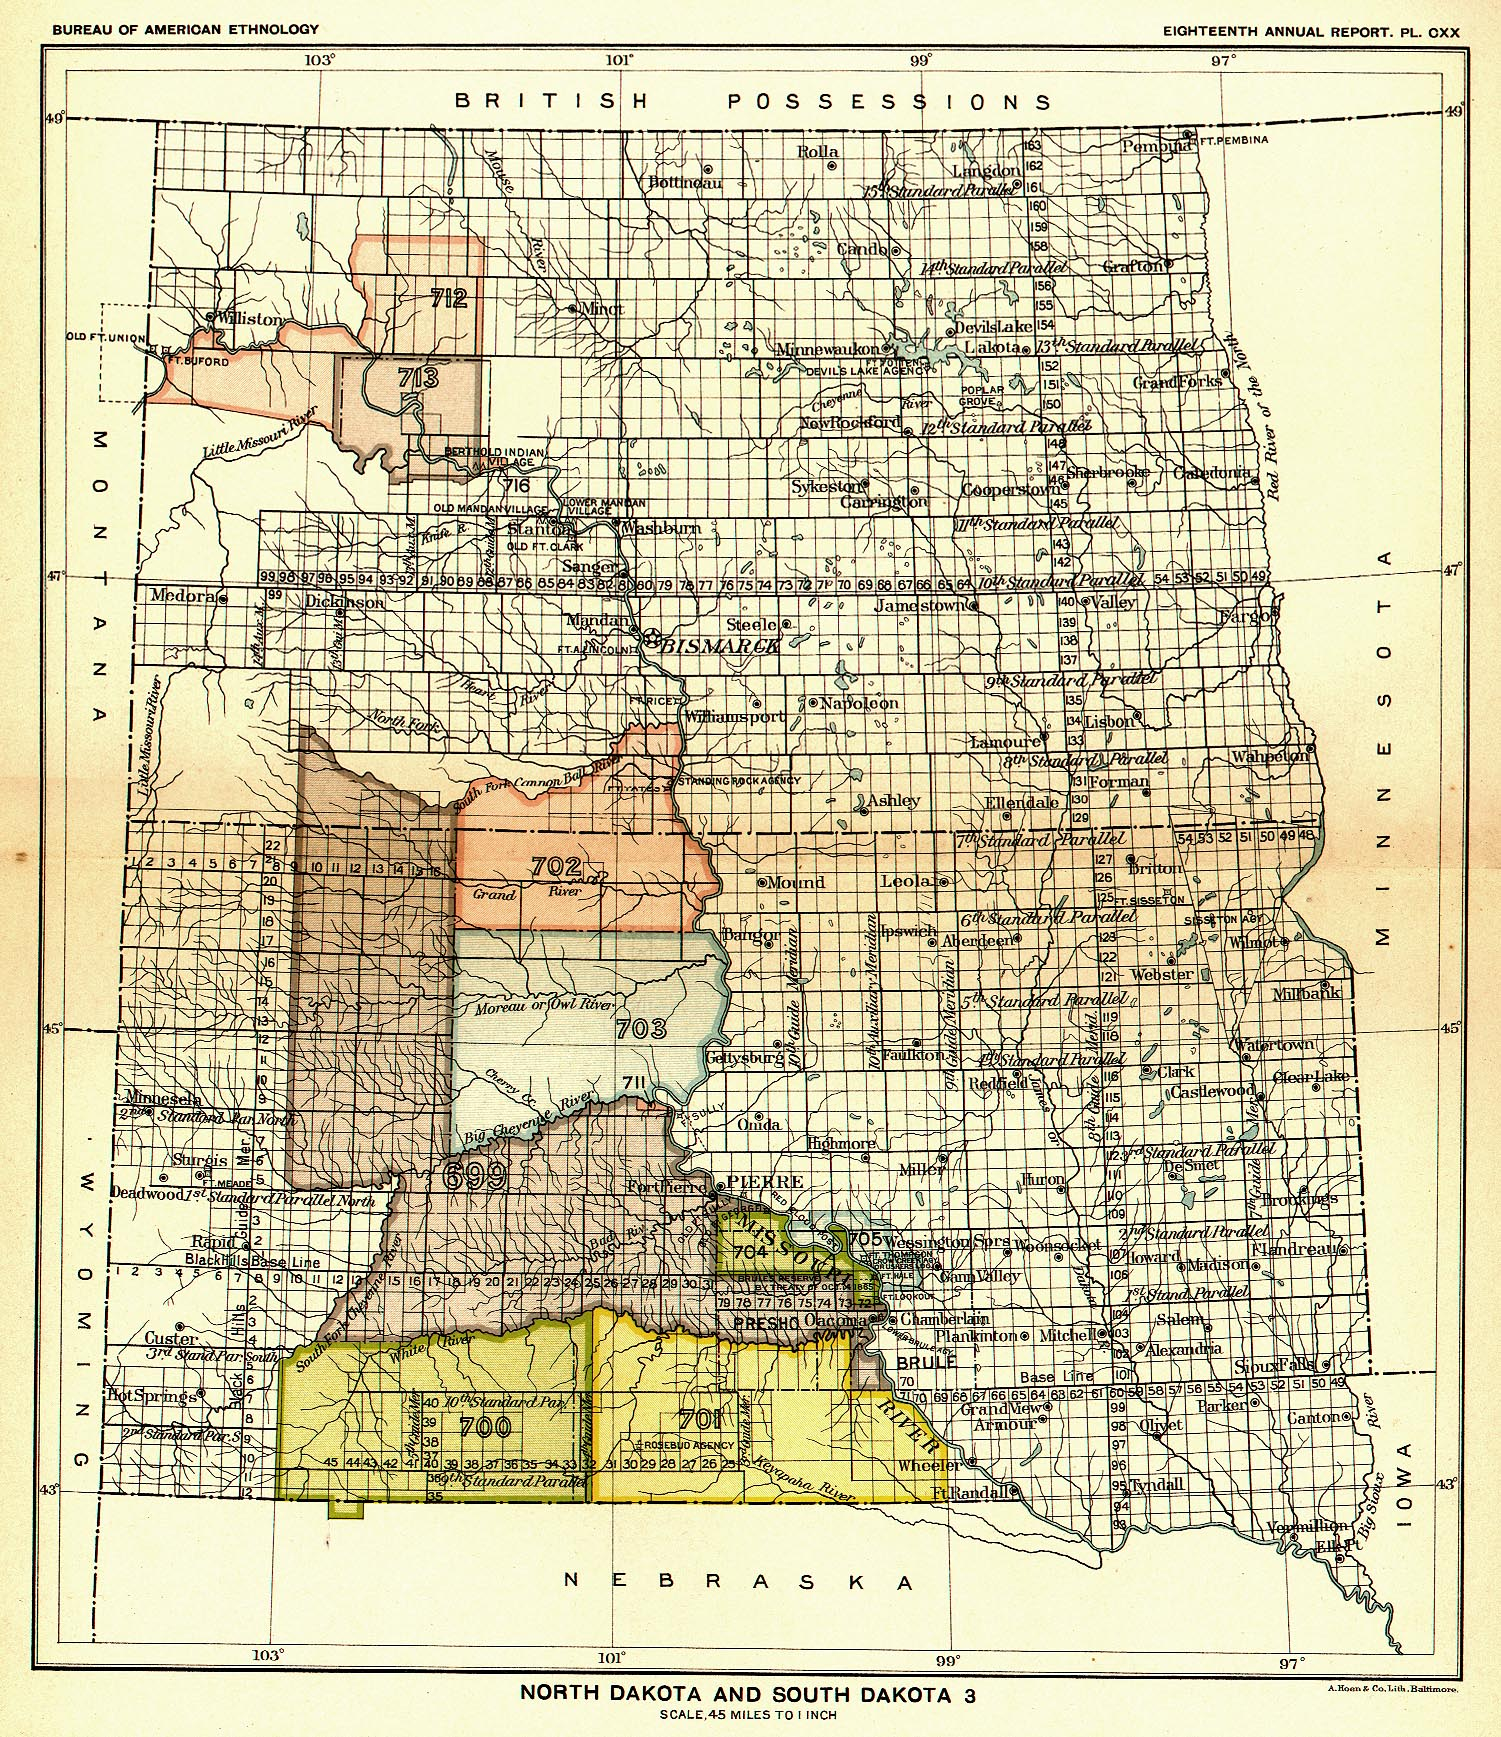 Indian Land Cessions In The U S North Dakota And South Dakota - Map of us by date of admission